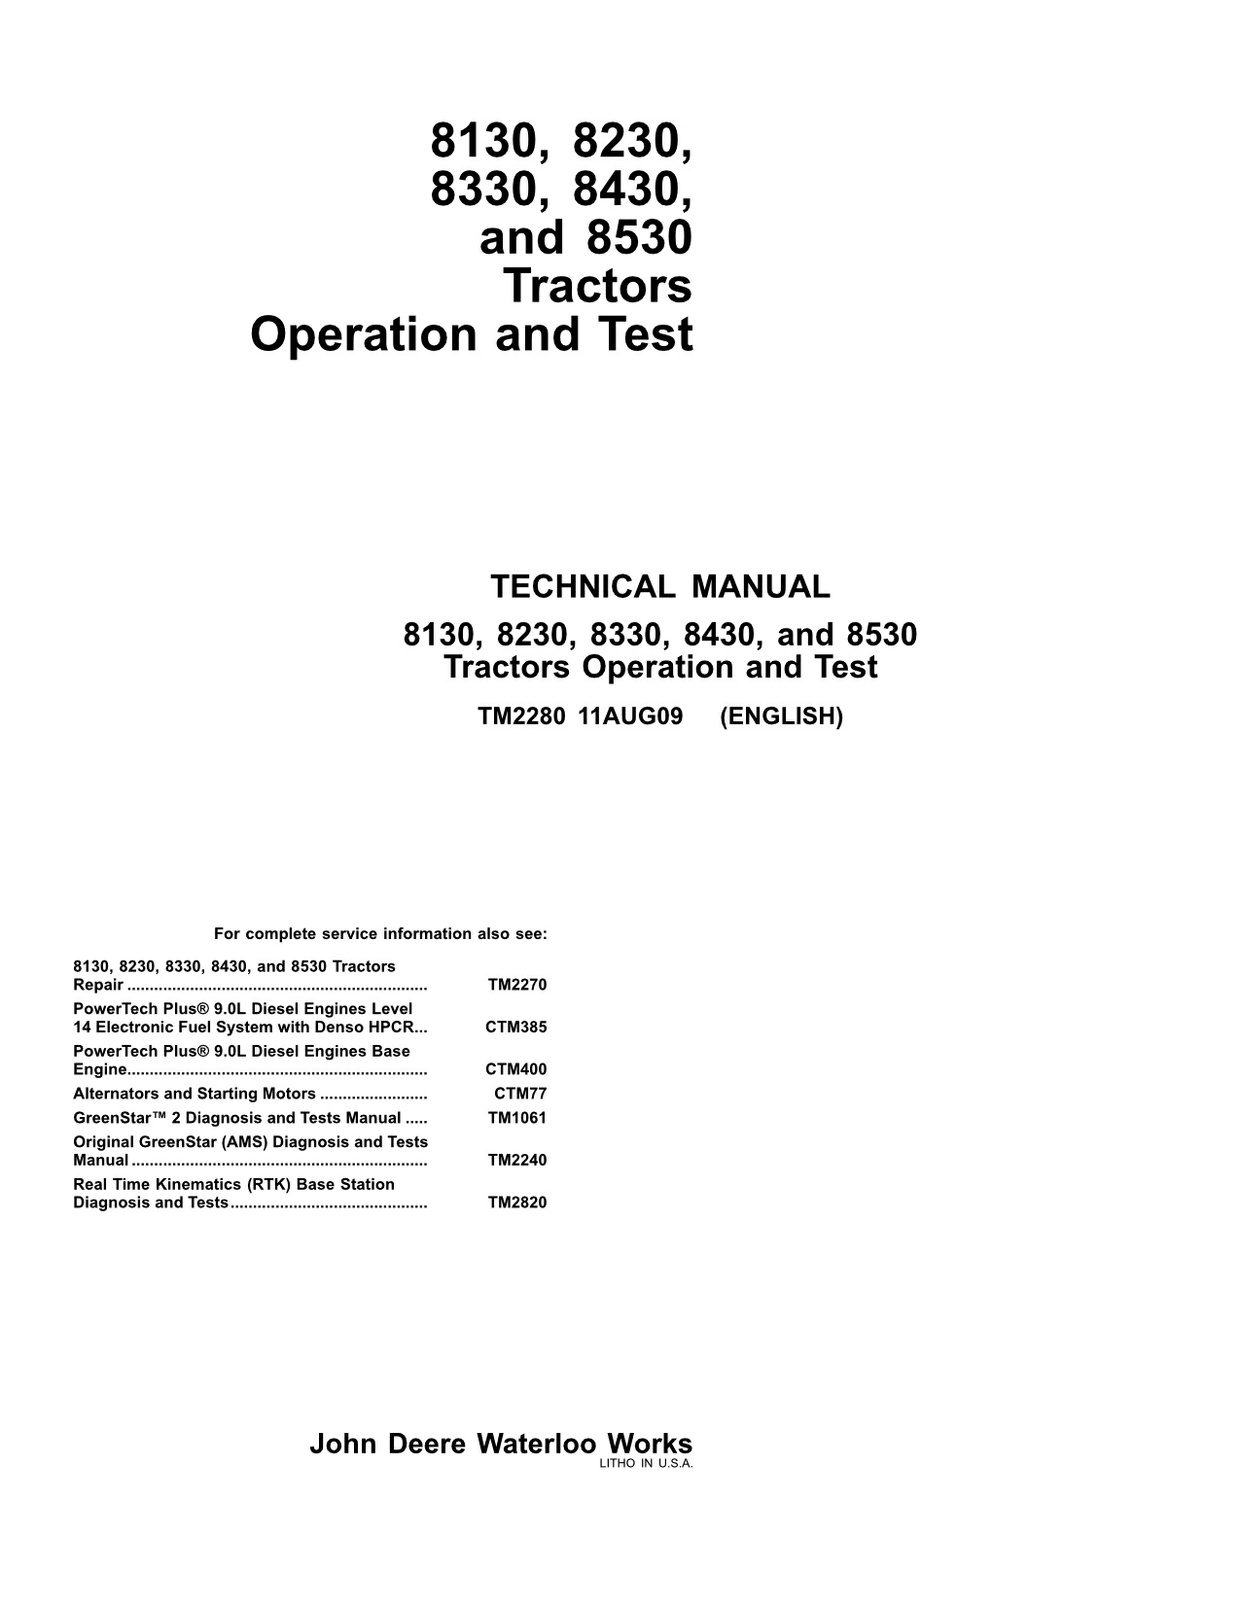 John Deere 8130 8230 8330 8430 8530 - technical manual - operation and test - TM2280 - 5646 pages